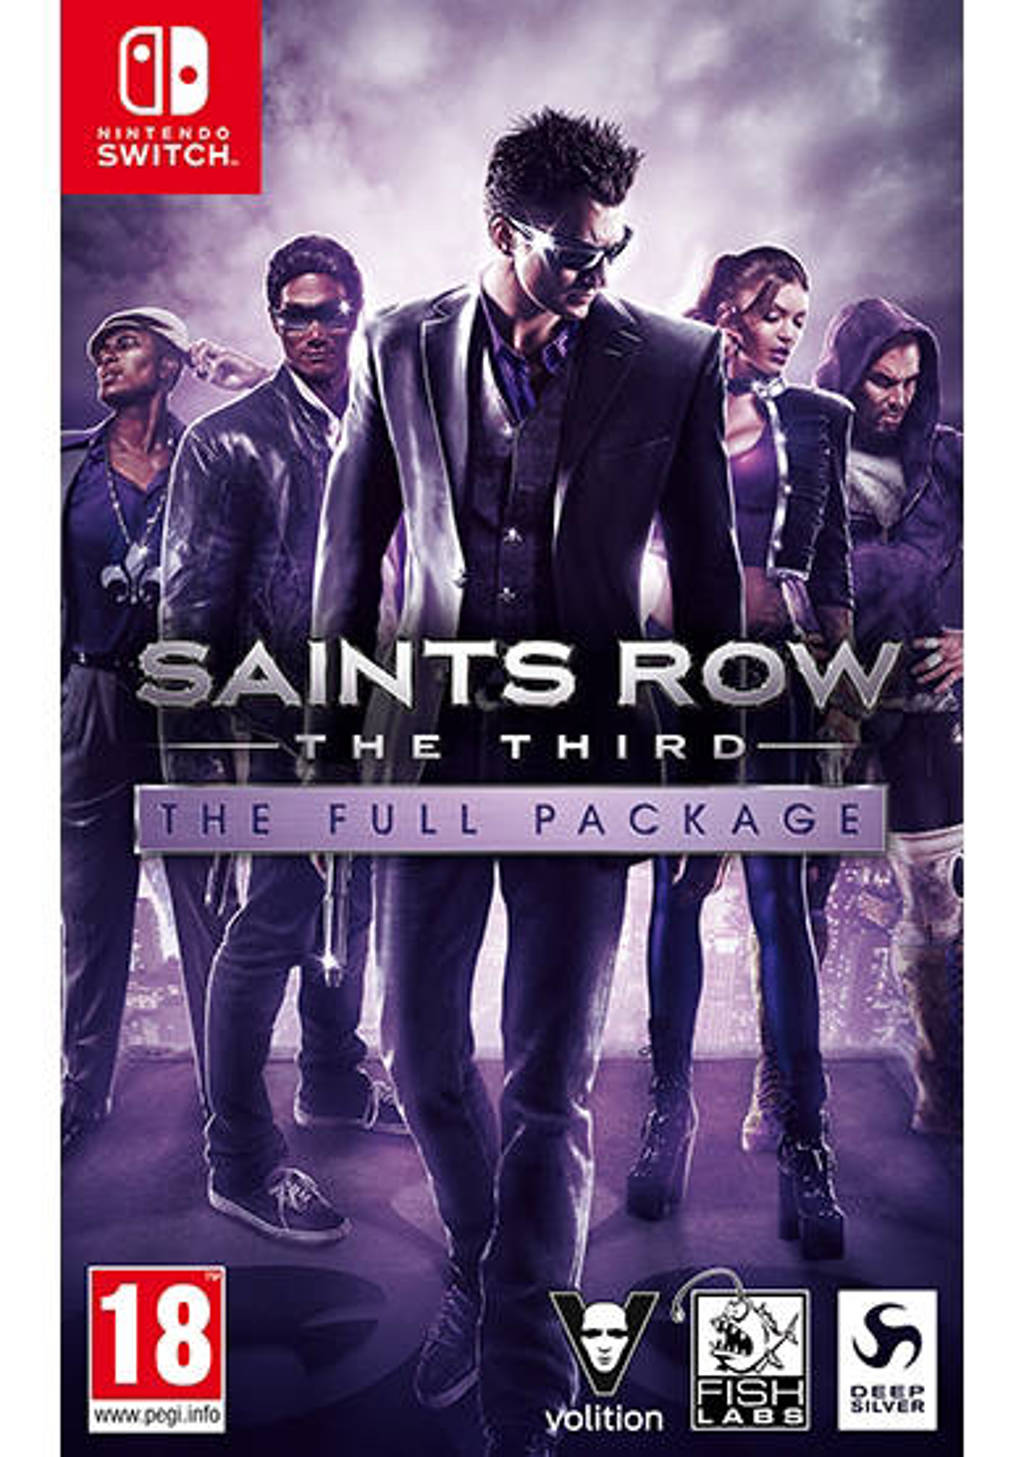 Saints row the third - The full package (Nintendo Switch)